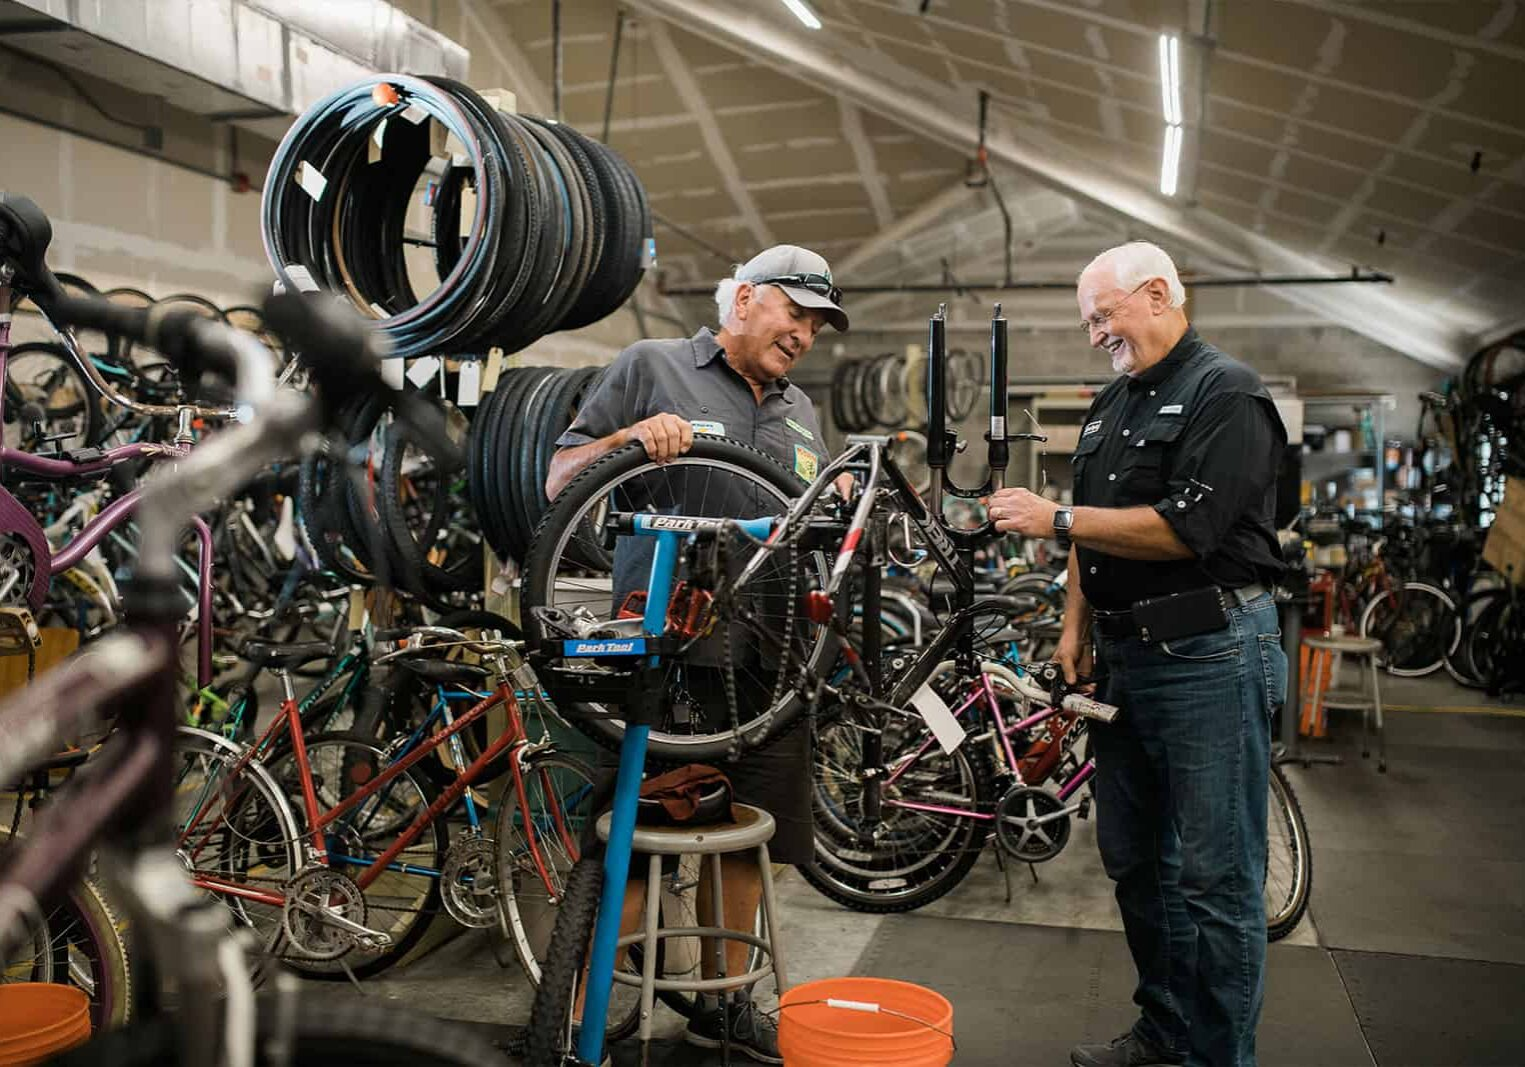 men working on bikes for the pedal power group at fpc